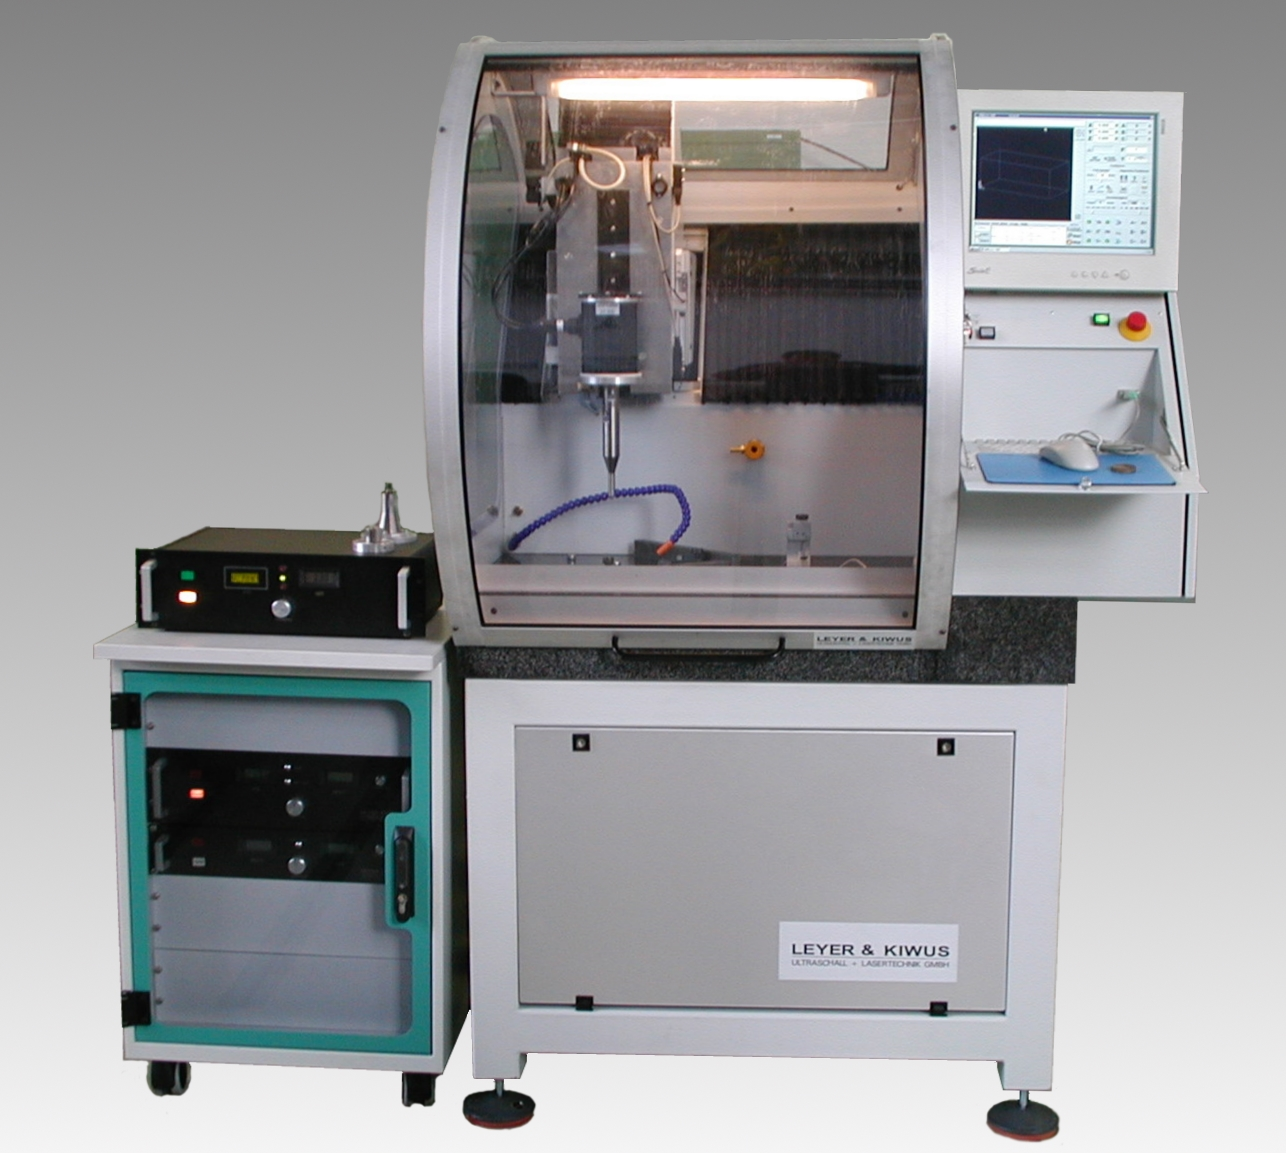 Ultra 2000 ultrasonic machining system with sonotrode measuring station